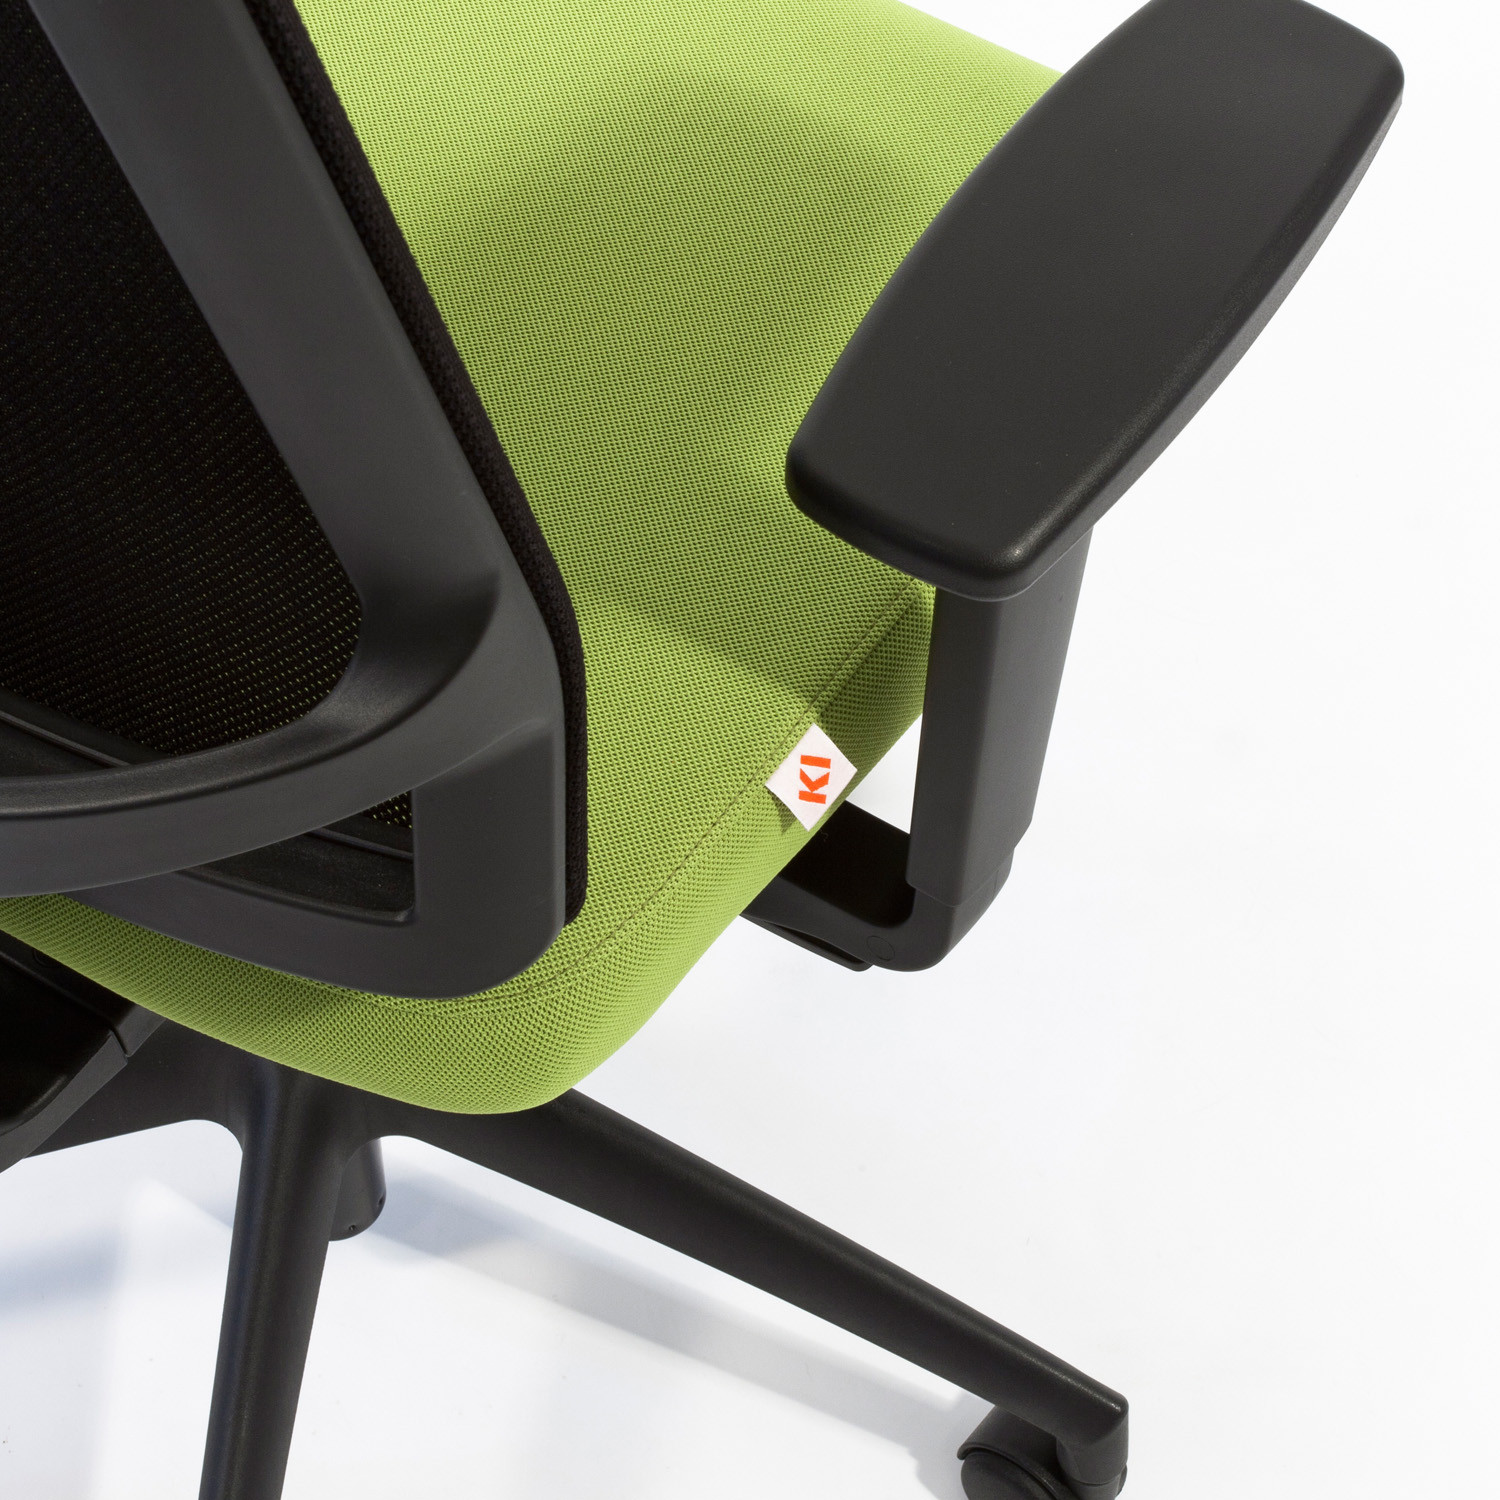 KI Faveo Desk Chair